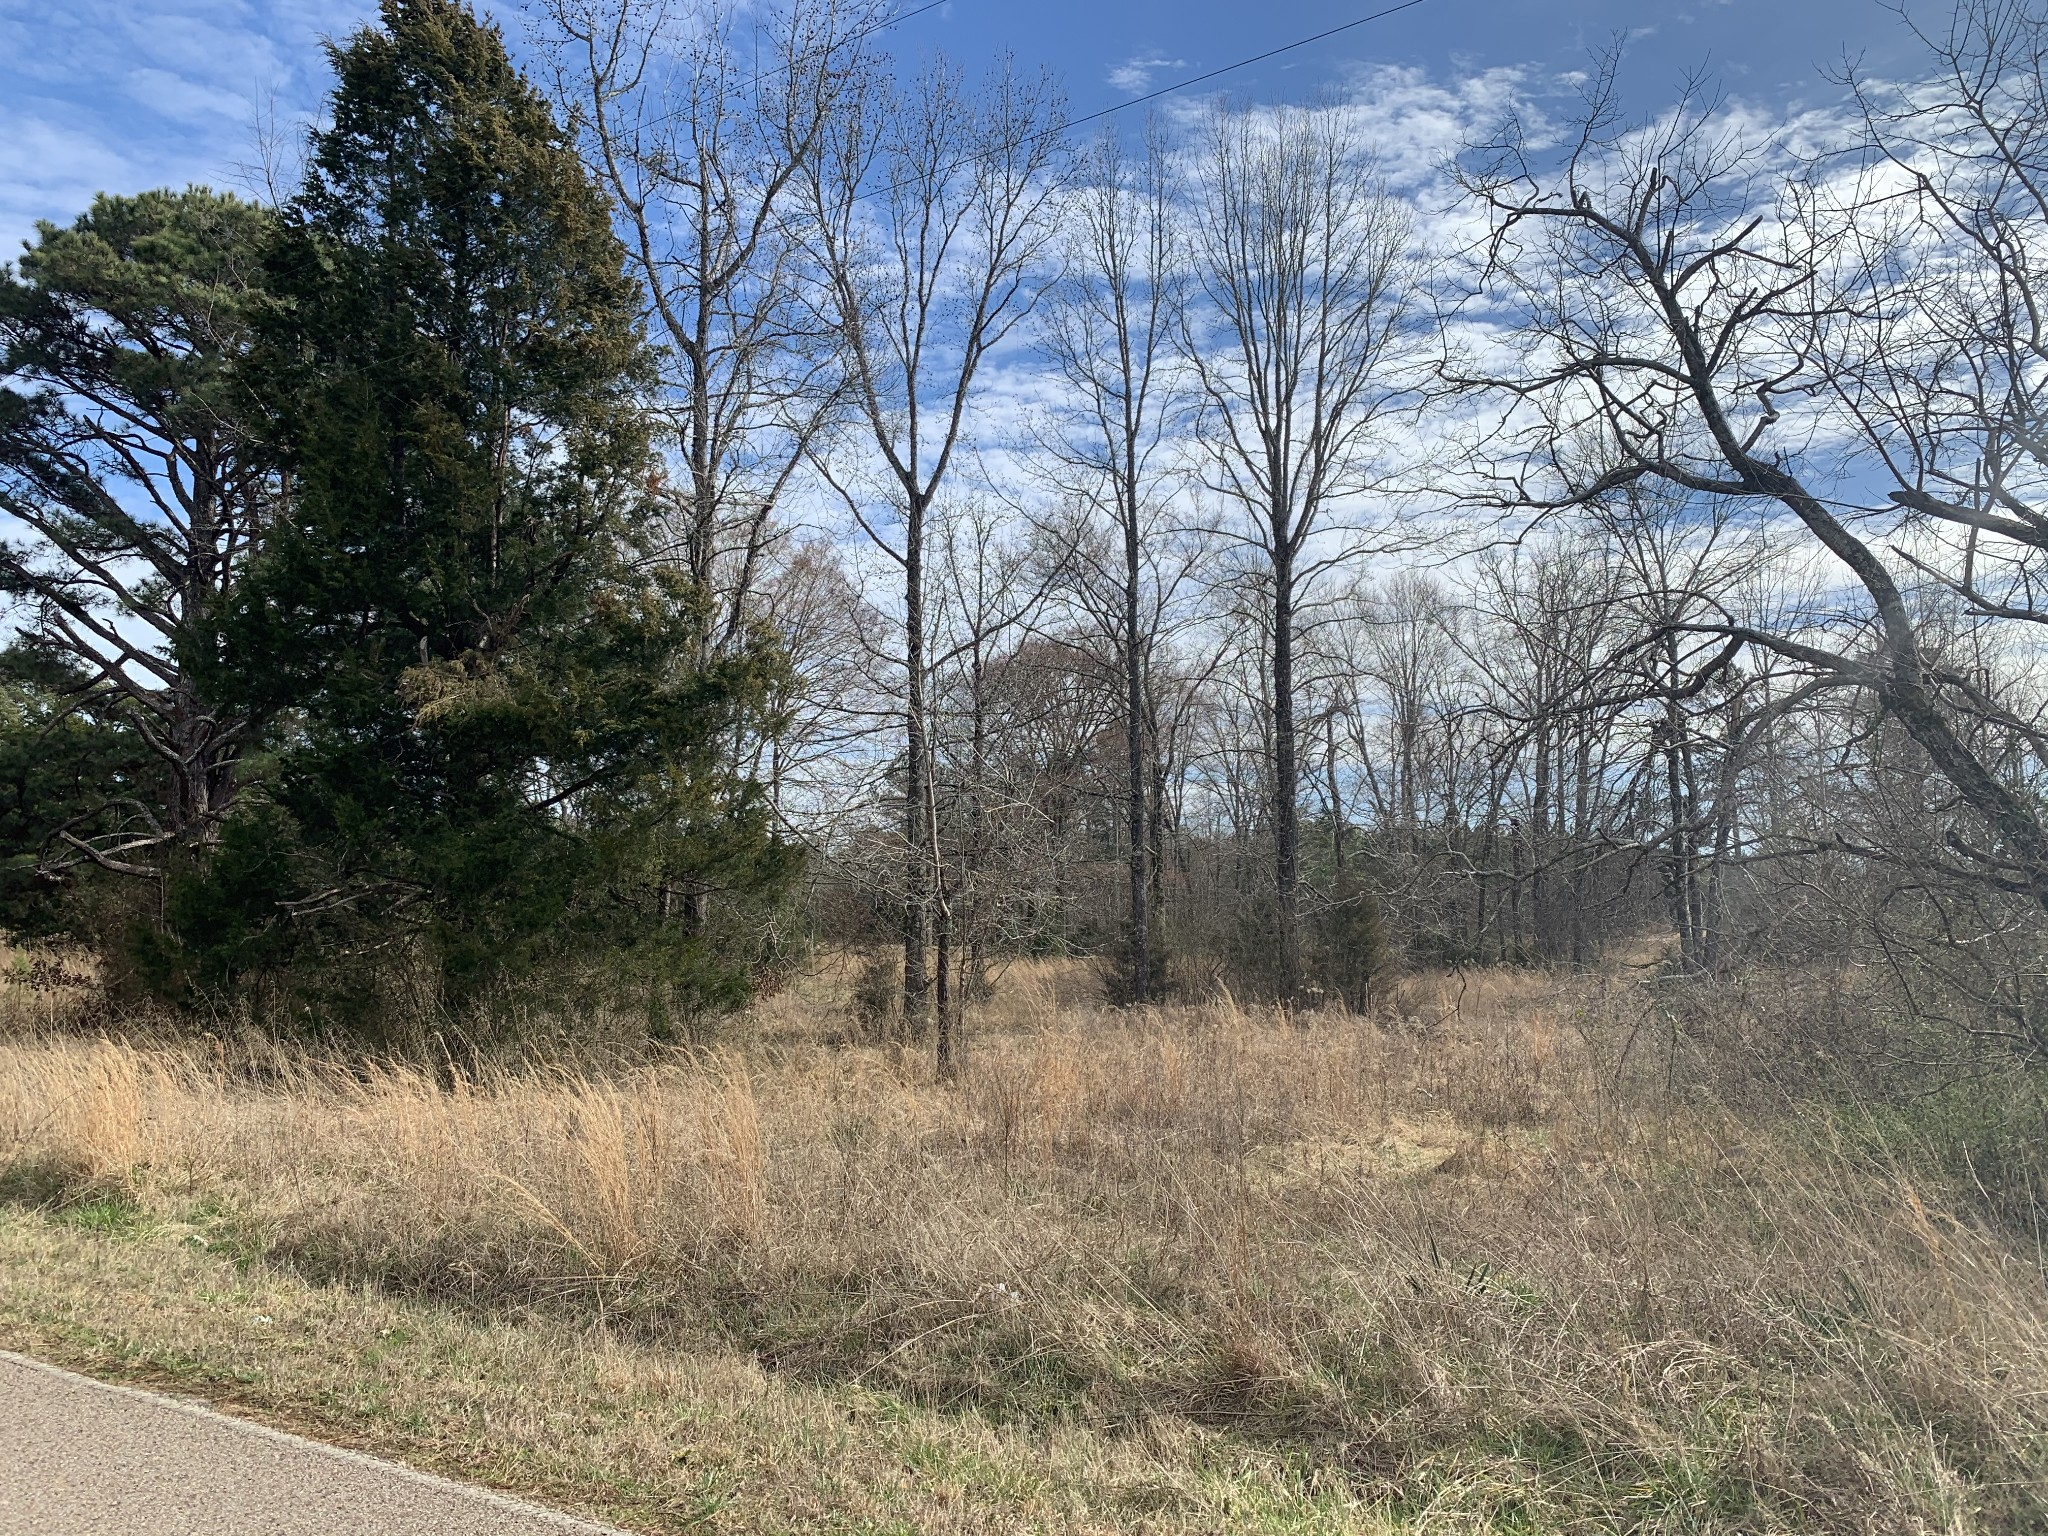 0 Hwy 142, Counce, TN 38326 - Counce, TN real estate listing